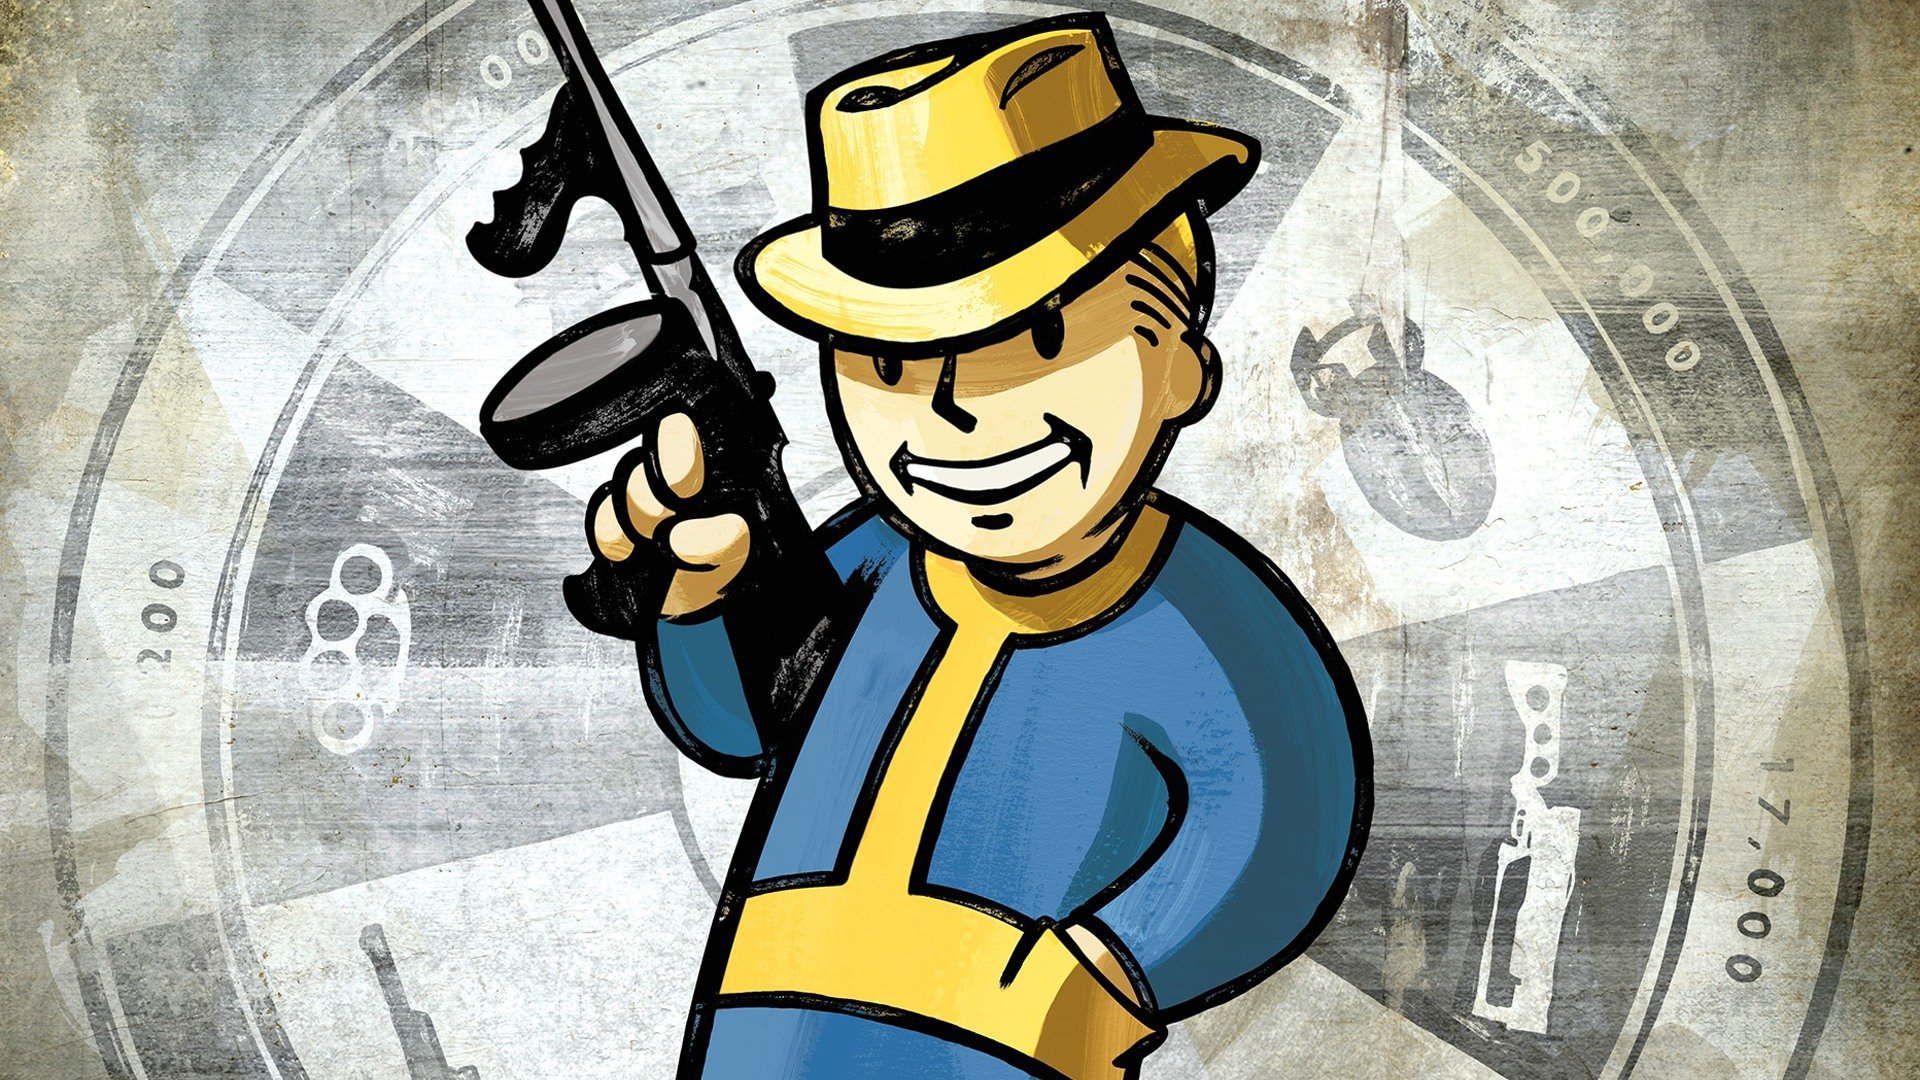 Awesome Vault Boy Wallpaper